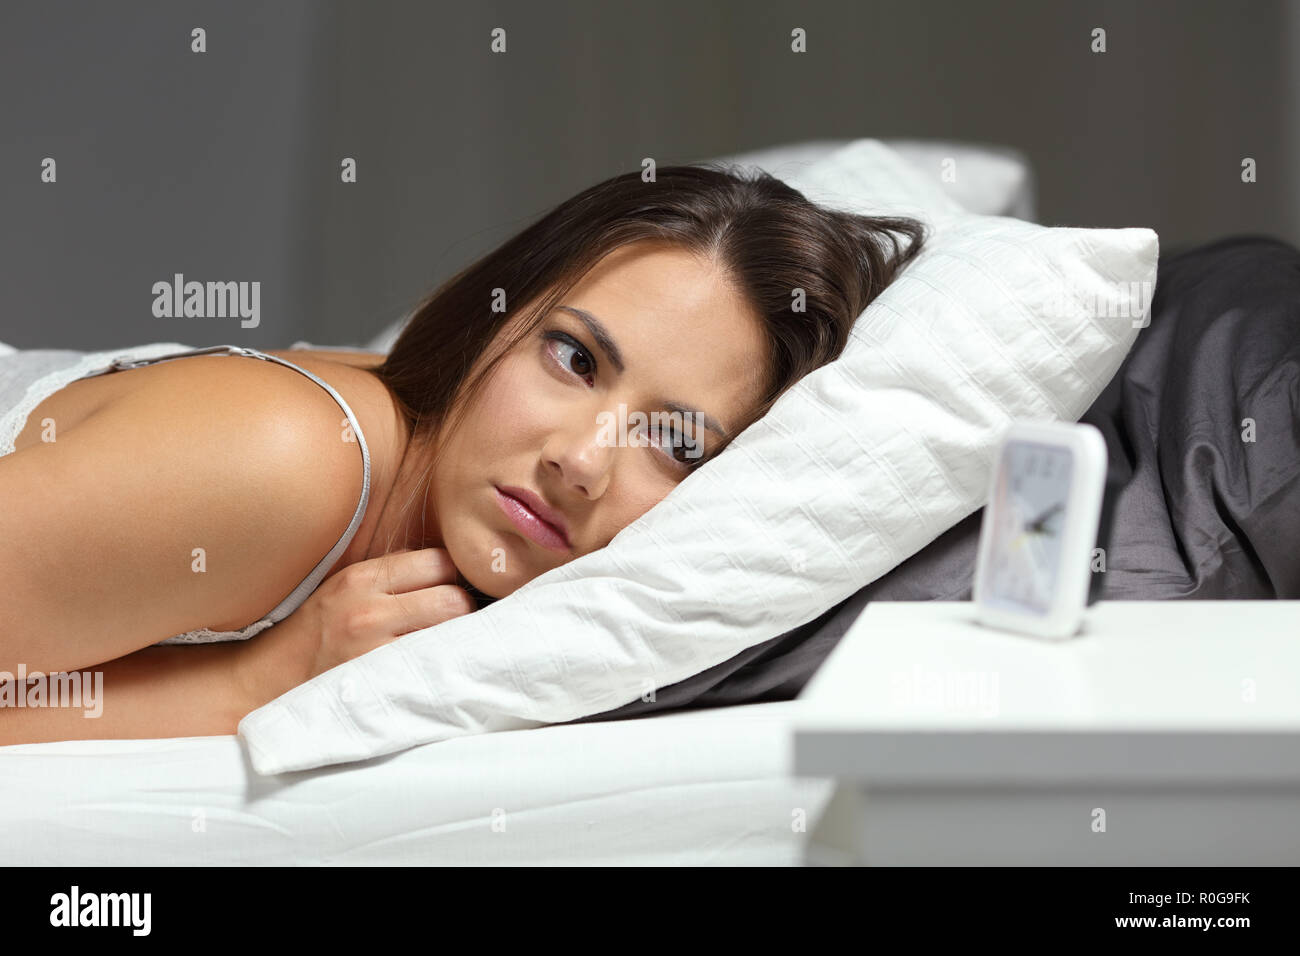 Sleepless insomniac girl looking at alarm clock lying on a bed in the night at home Stock Photo